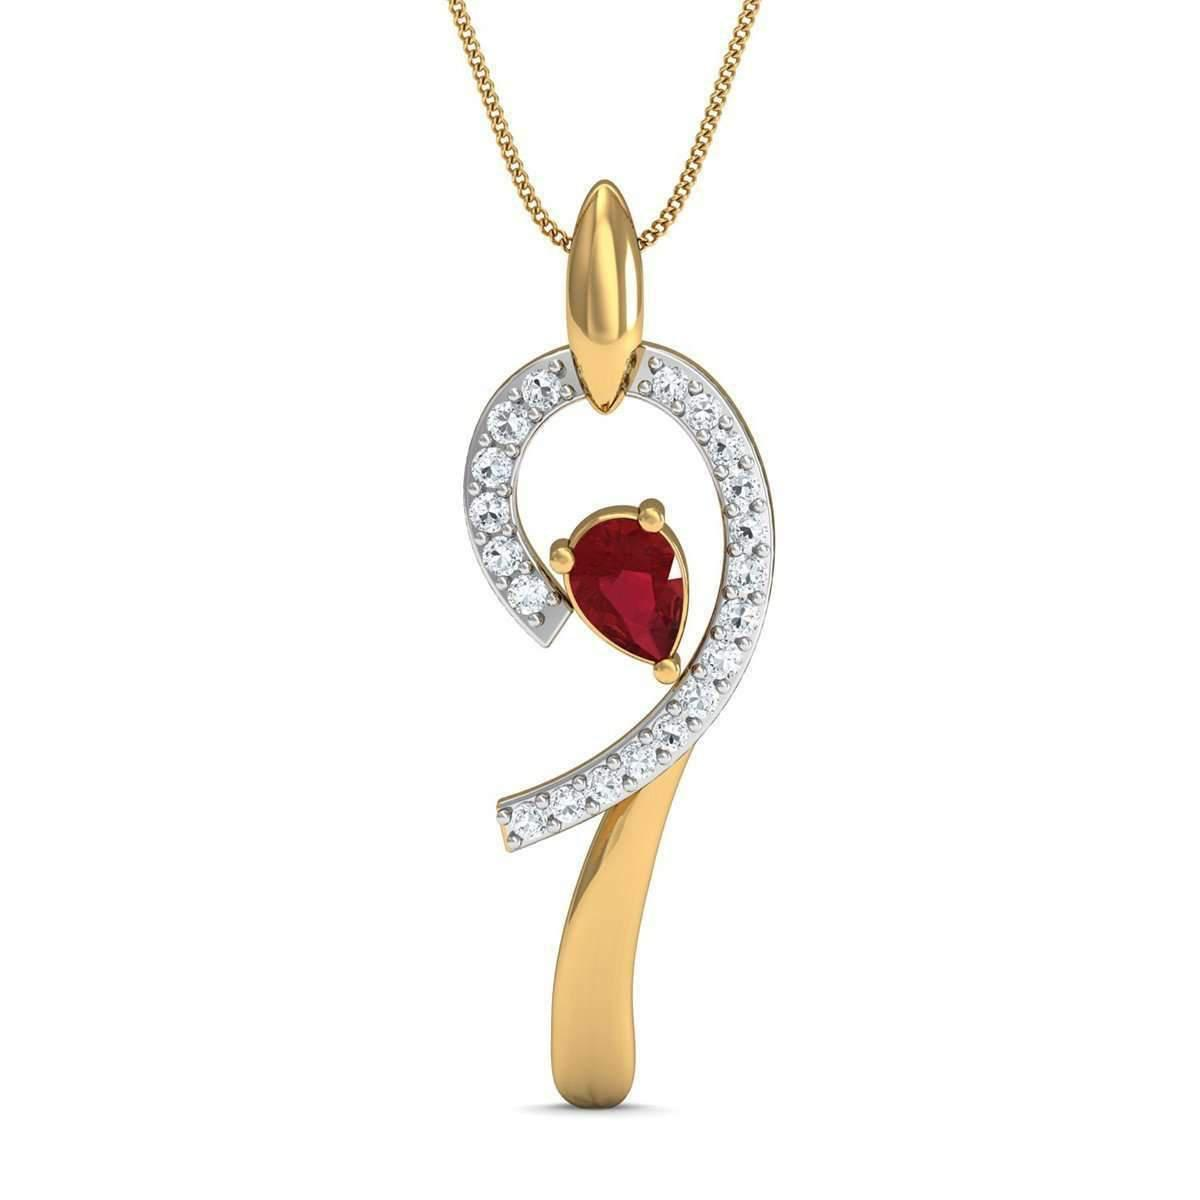 Diamoire Jewels Hand-carved Pendant with 7 Pave Diamonds in 10kt Yellow Gold NRMuY